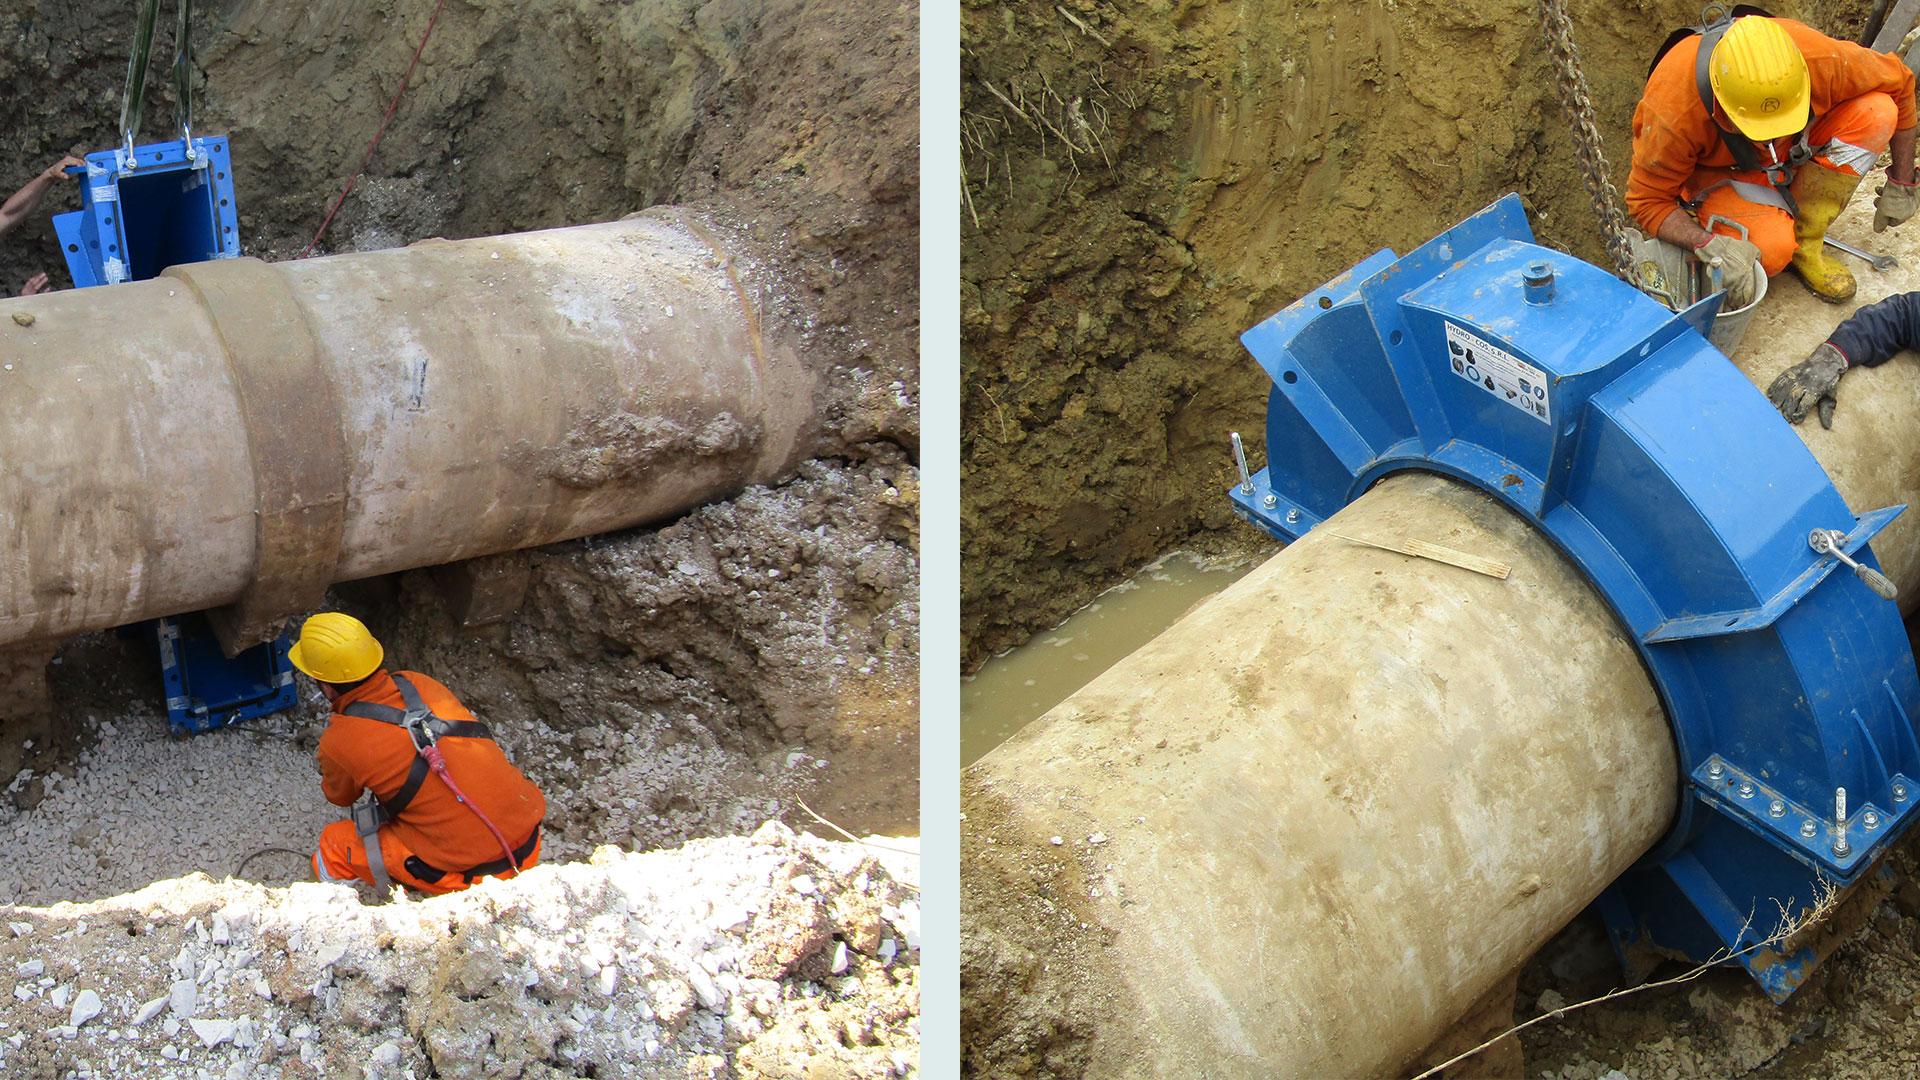 A Hydro Fast socket encapsulation collar was used for repairing leaking socket joint on old and fragile concrete pipeline located in the Lecce district in Puglia, Southern Italy.